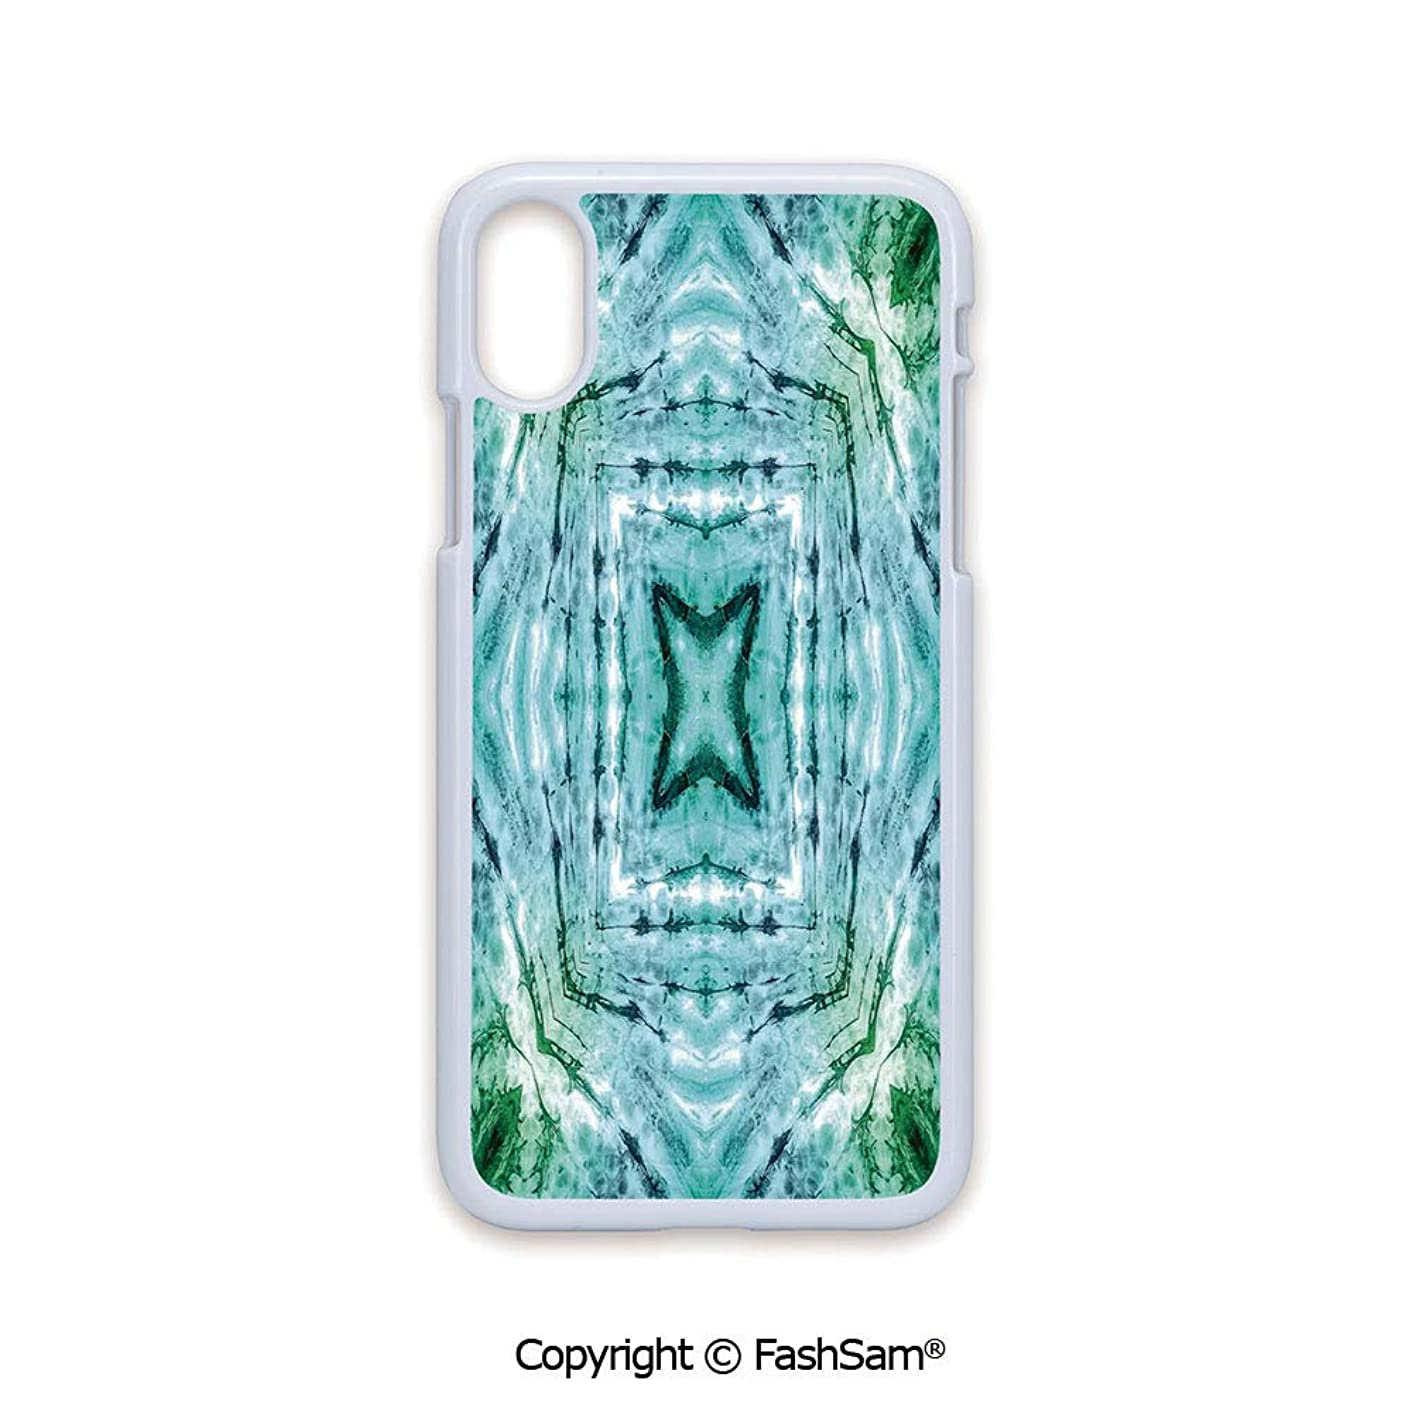 Plastic Rigid Mobile Phone case Compatible with iPhone X Black Edge Star Inside Square Shaped Kaleidoscope Tie Dye Motive with Outer Figures Image 2D Print Hard Plastic Phone Case